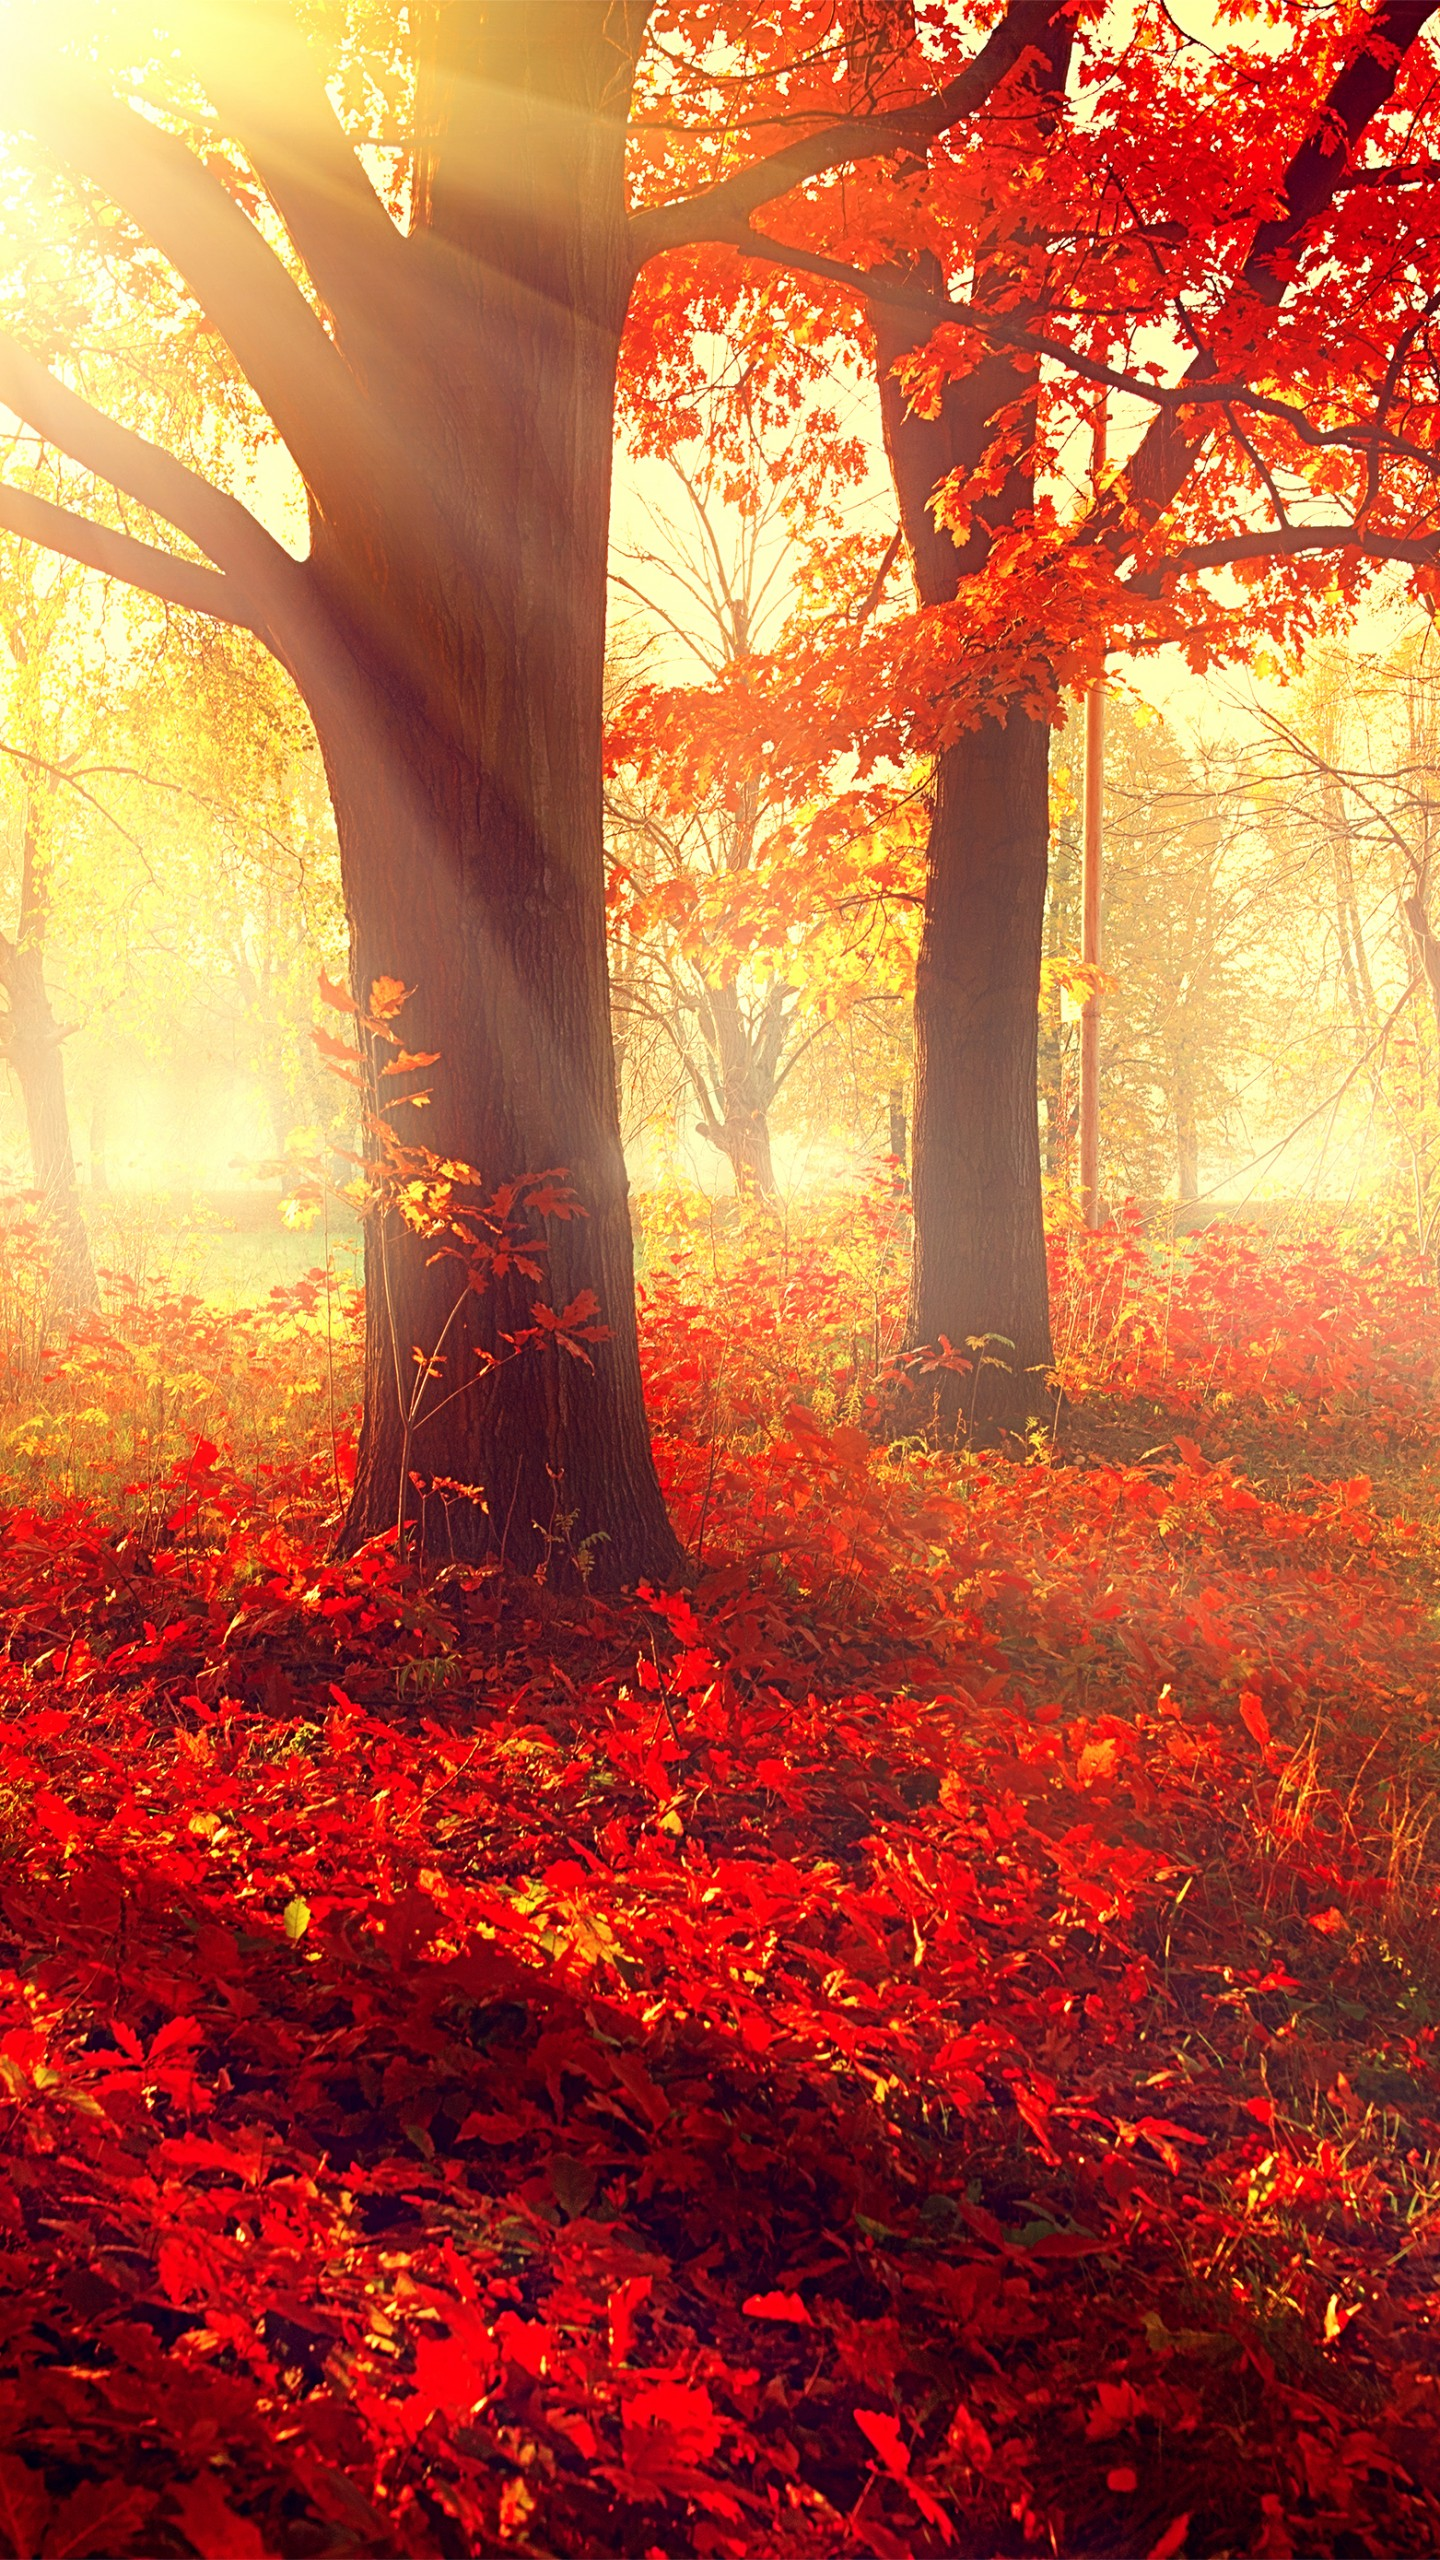 Wallpaper Park, 5k, 4k Wallpaper, Autumn, Beautiful